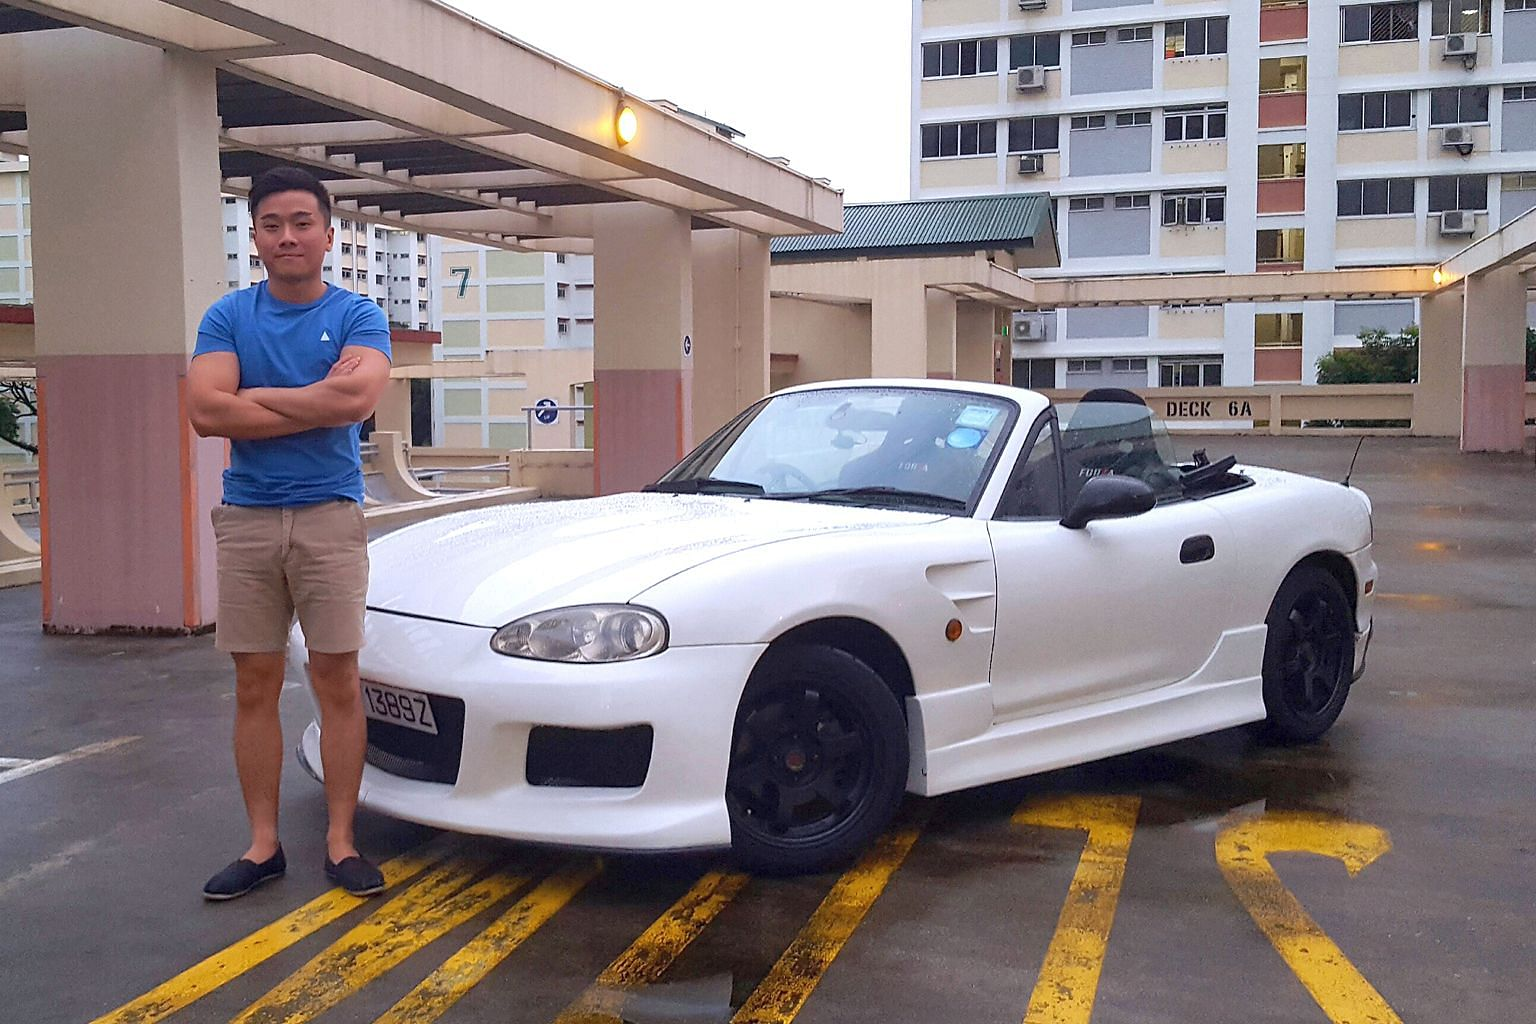 Mr Trevor Teo proposed to his fiancee while she was seated in the Mazda MX-5.